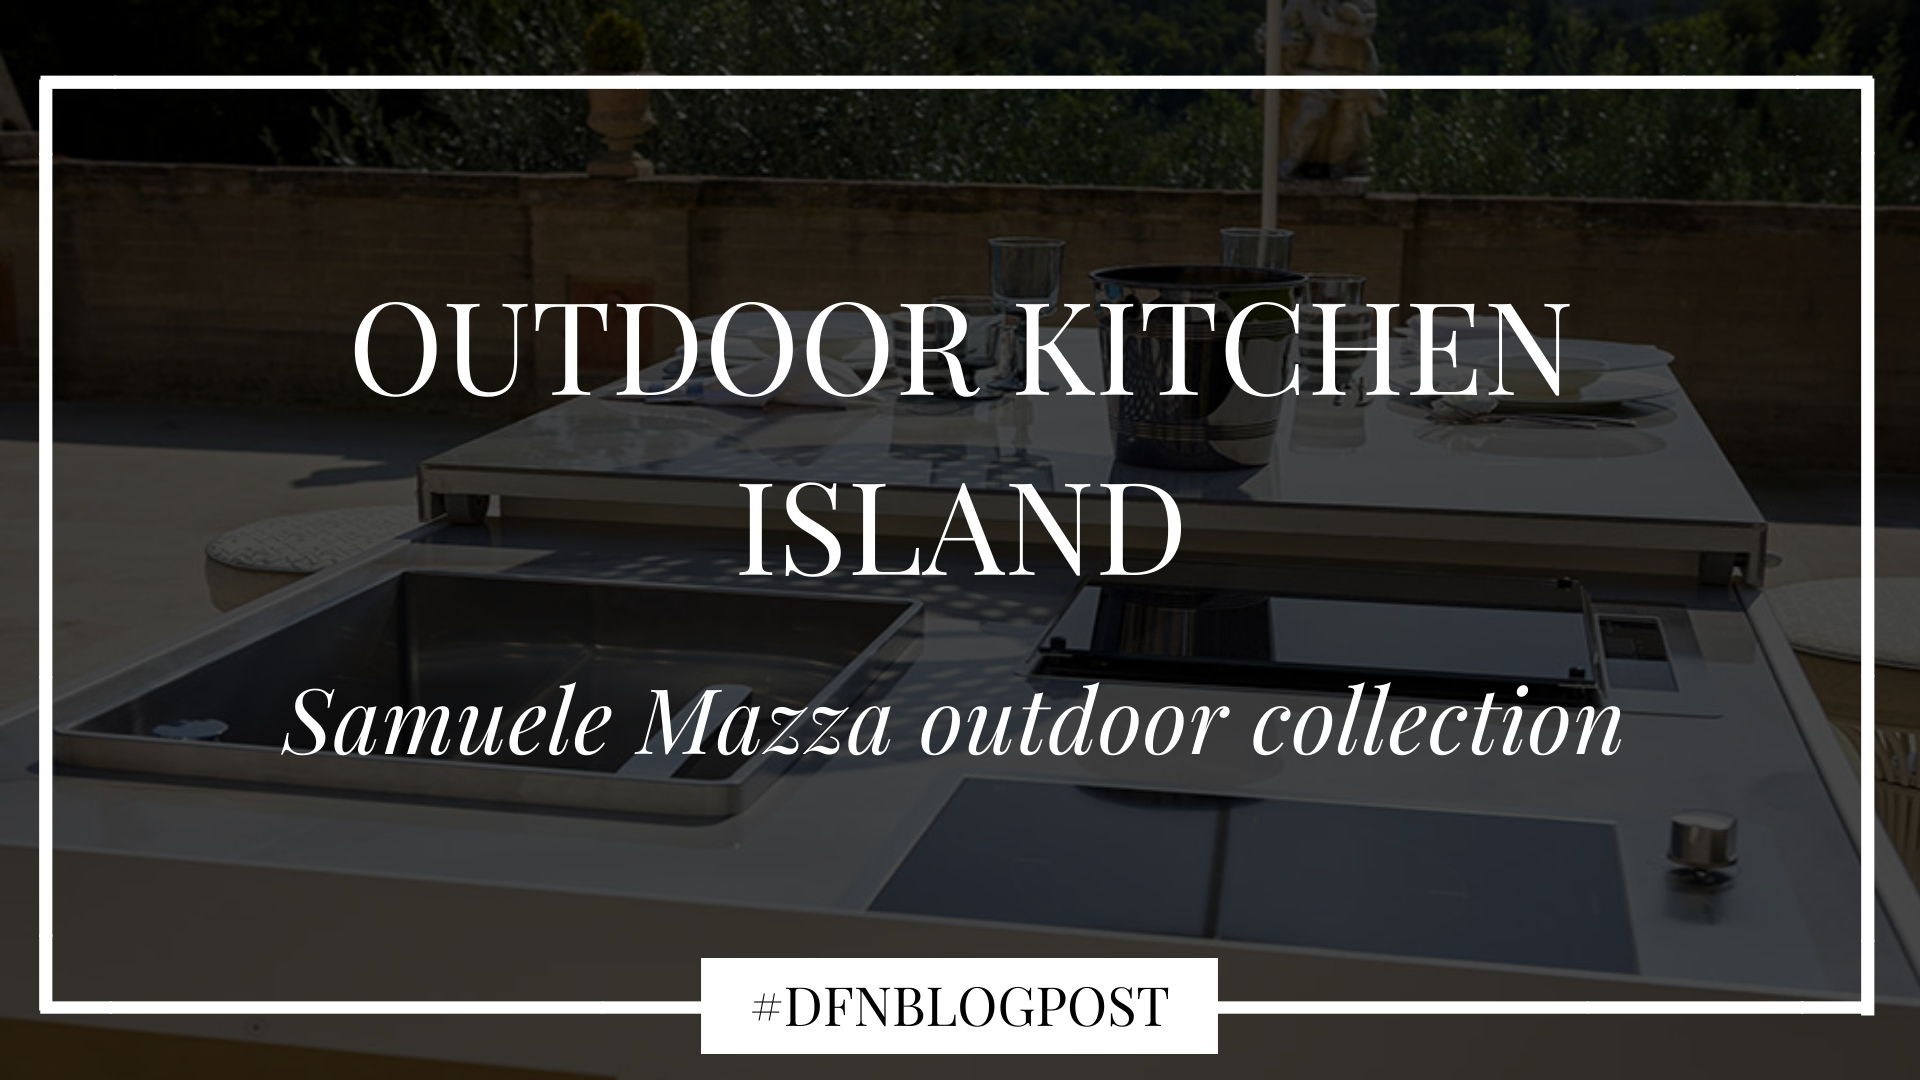 Improve an outdoor space with an outdoor kitchen island: Samuele Mazza outdoor collection 1